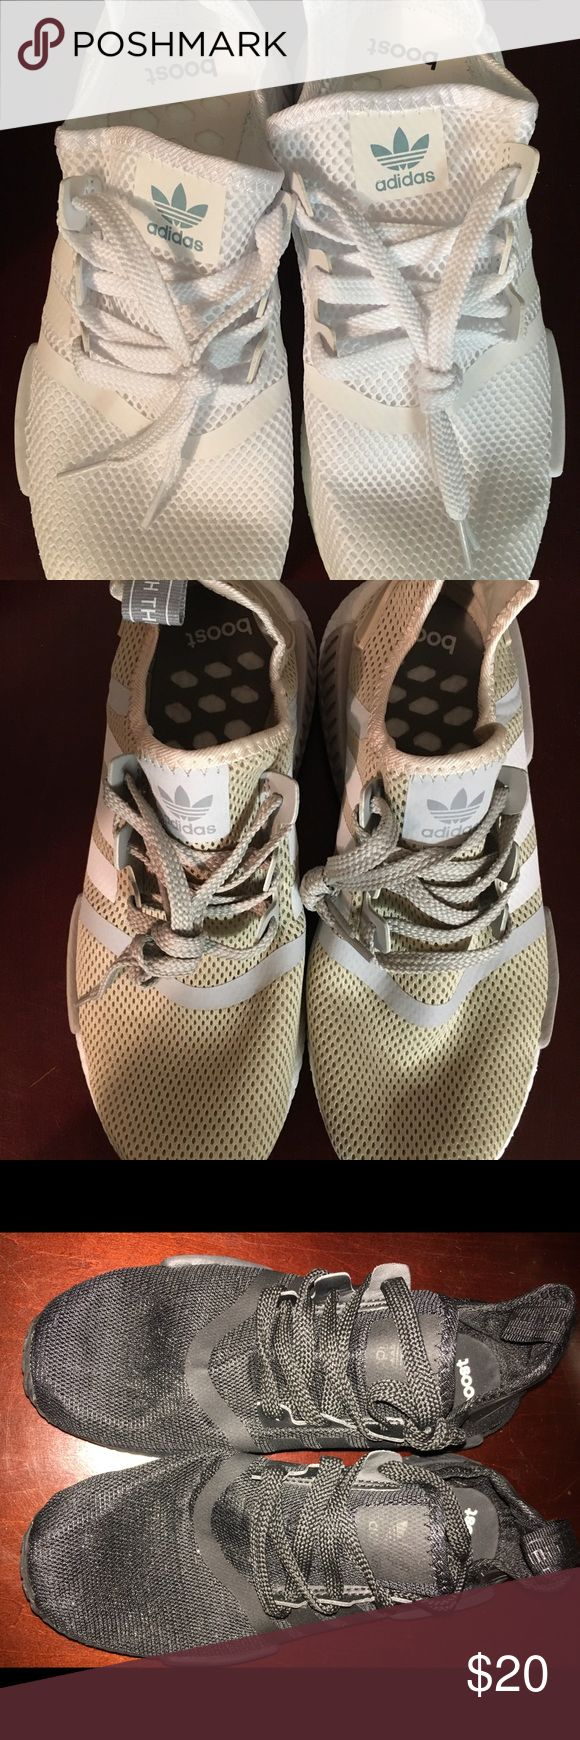 Cheap Mens Running shoes New, no box no tags no labels Sz 11 Message me which color you would like I have 2 pairs of each as of RN generic Shoes Sneakers